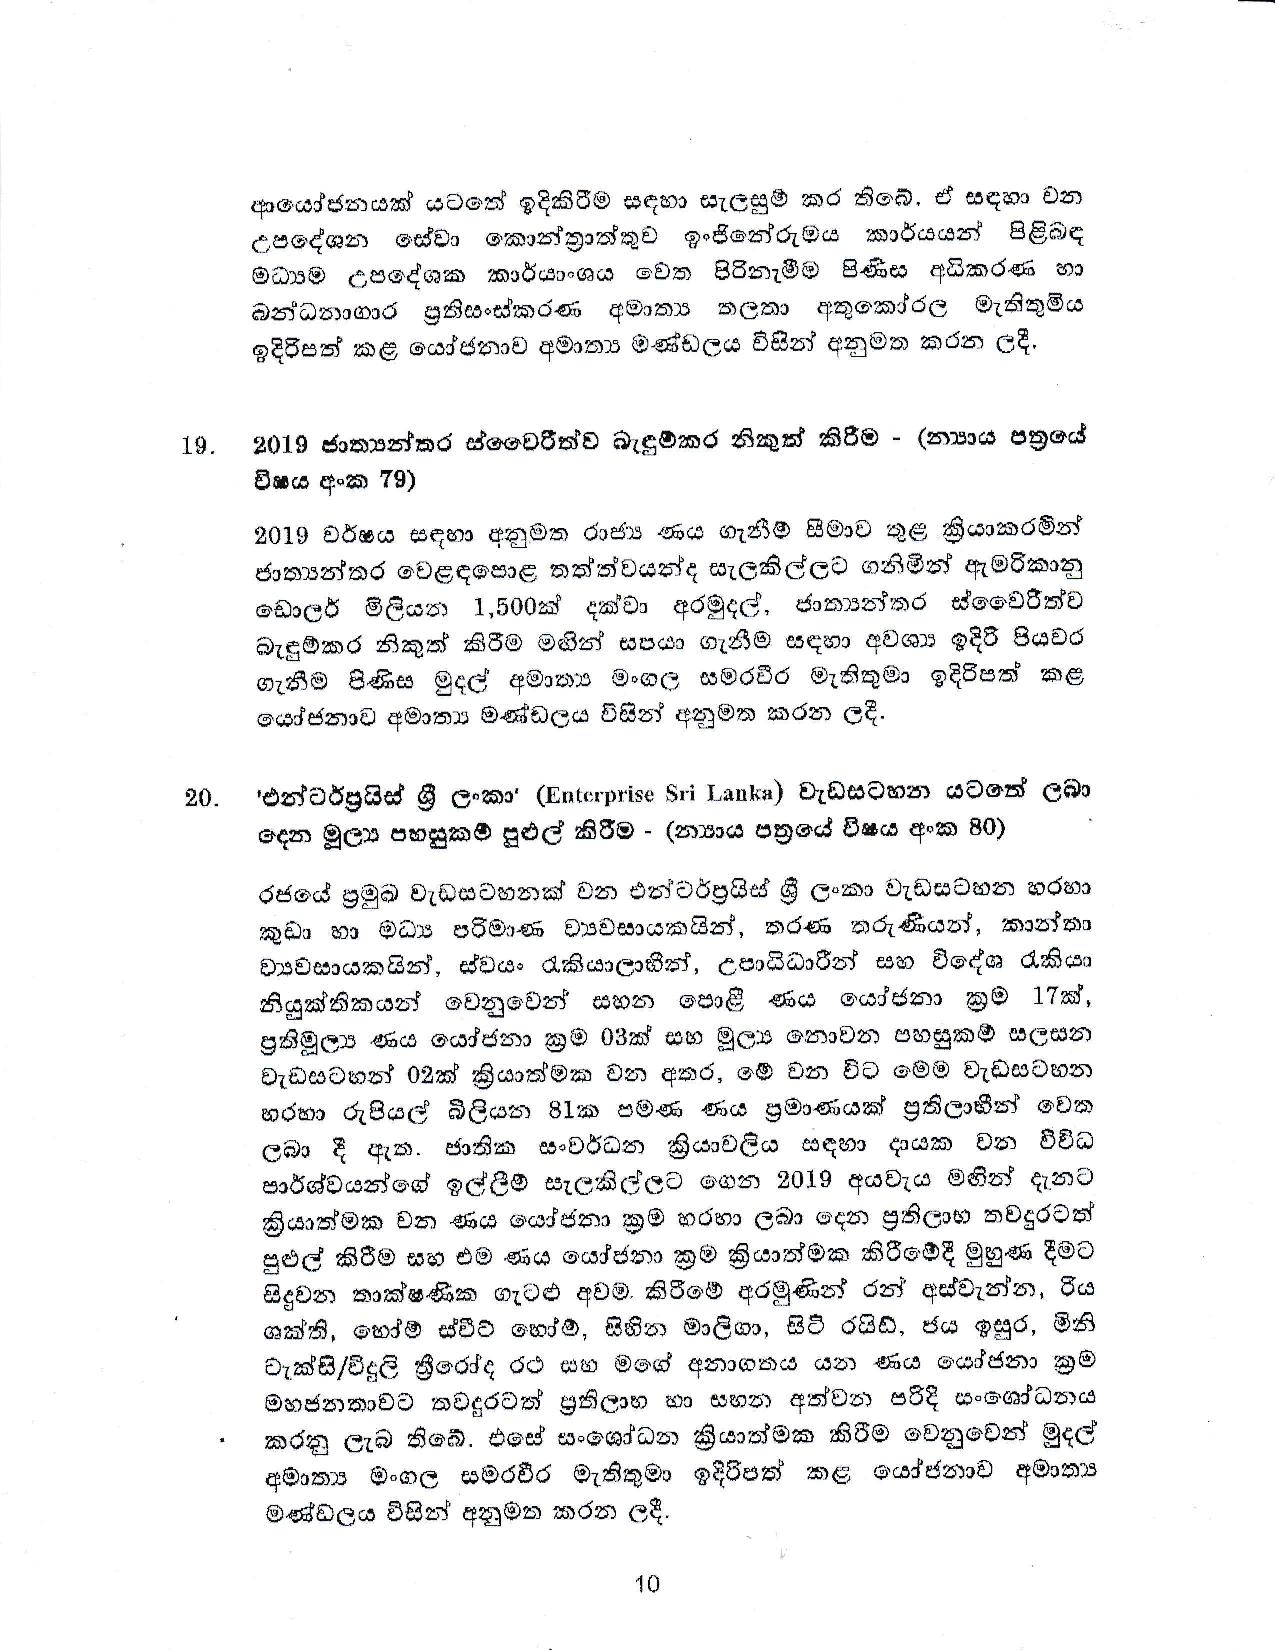 Cabinet Decision on 28.05.2019 page 010